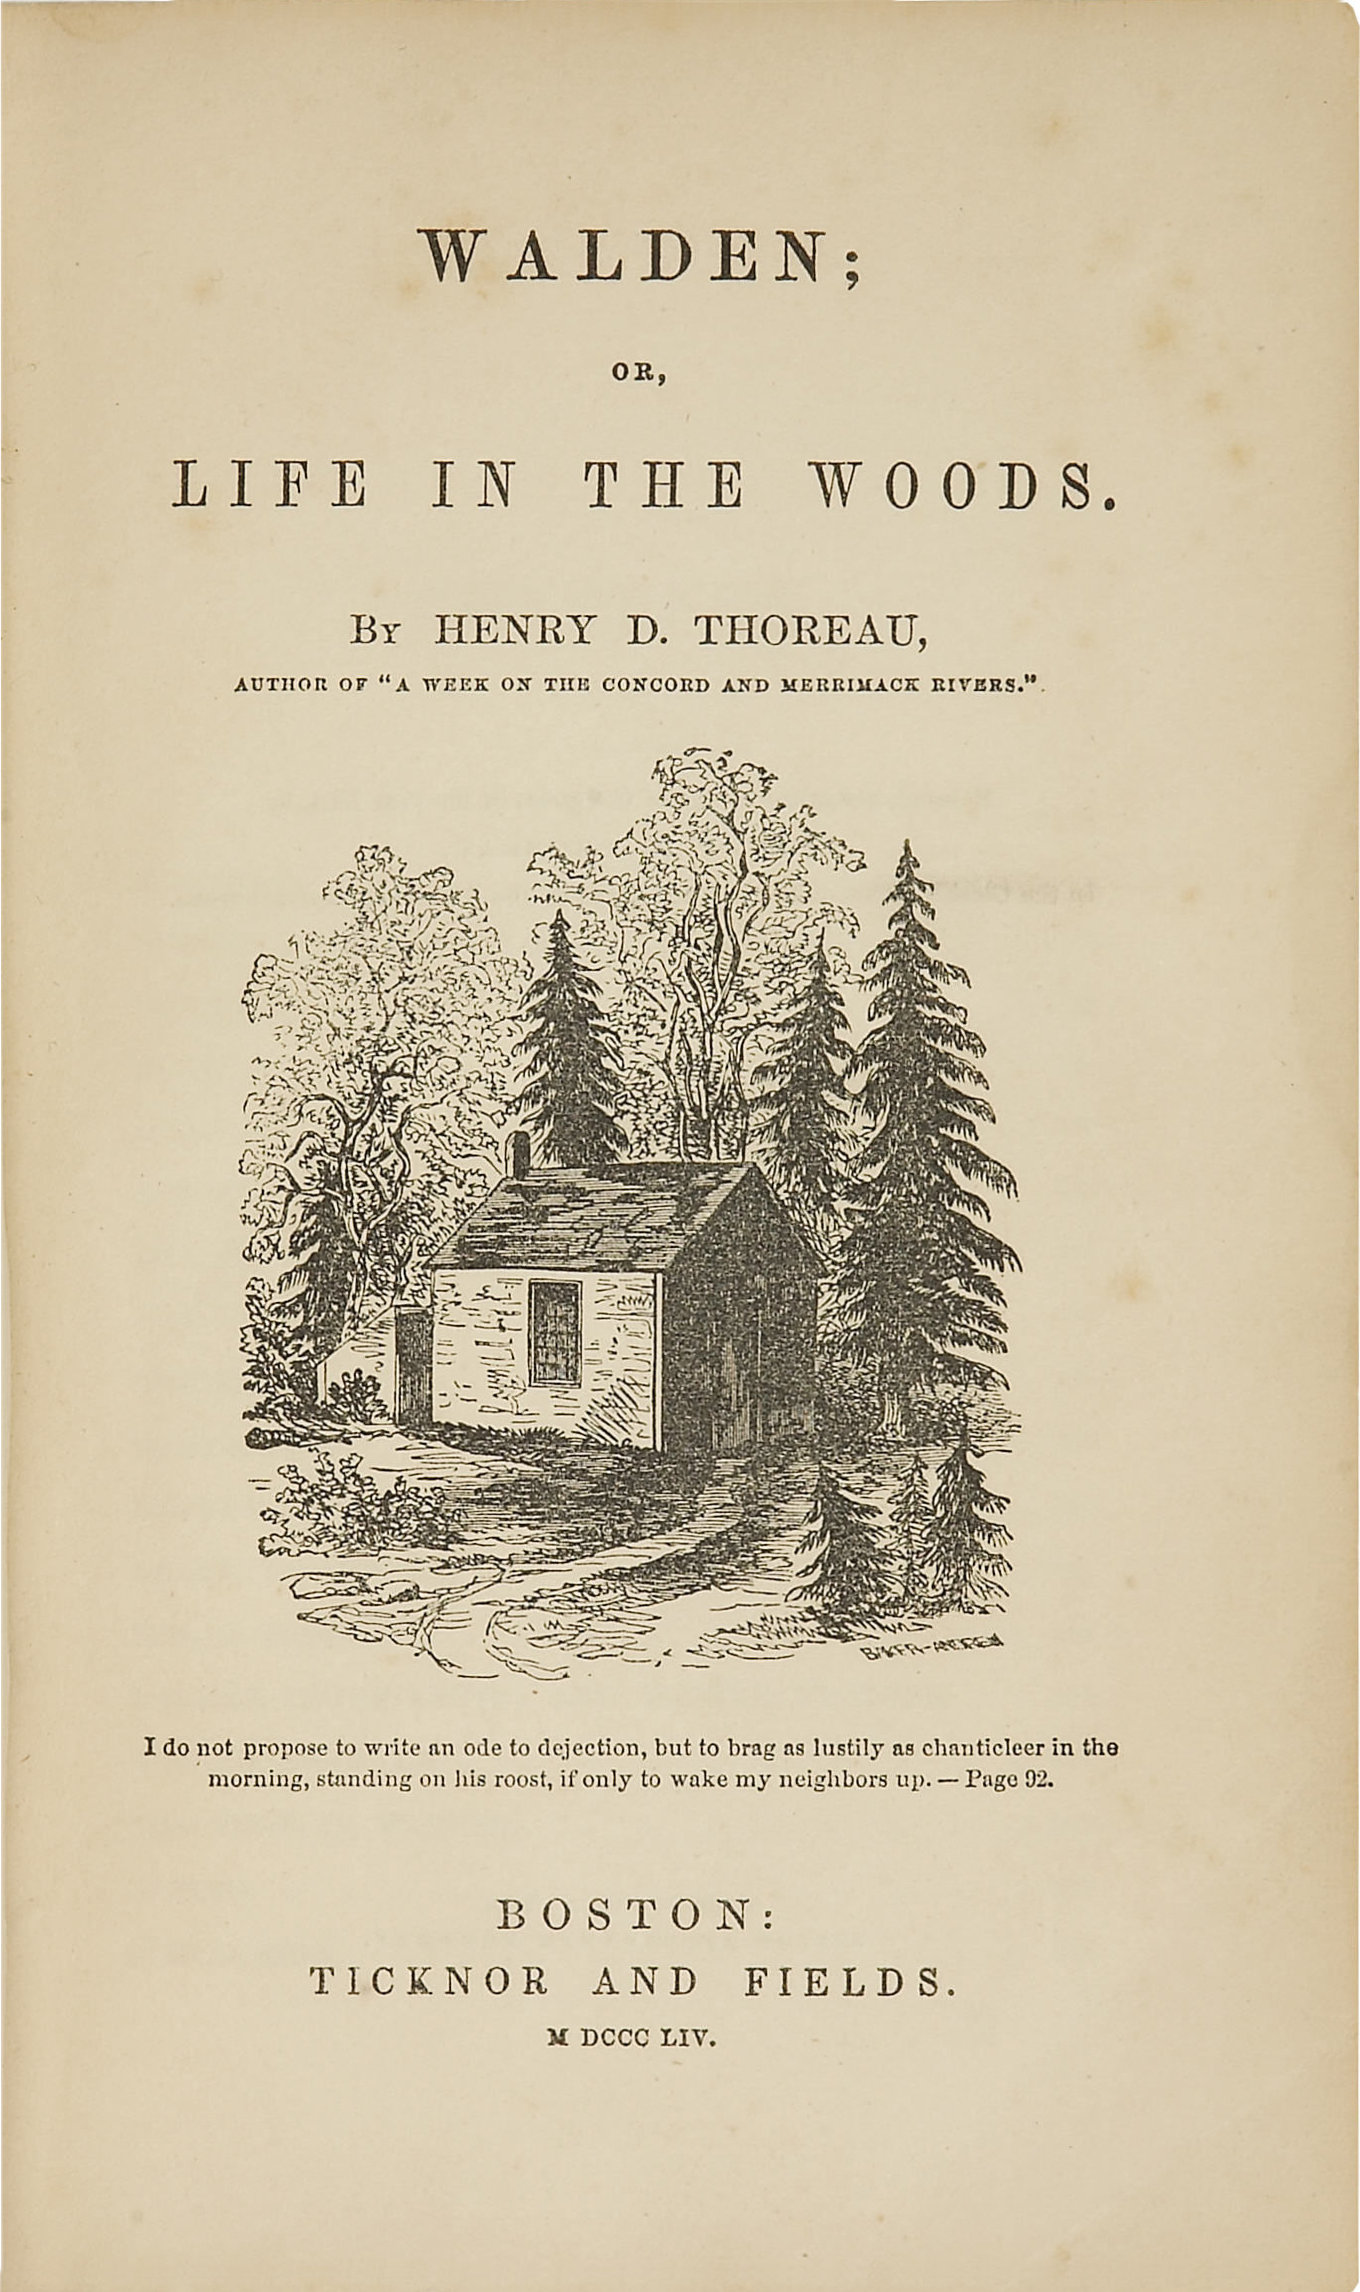 essay on friendship thoreau When ralph waldo emerson eulogized henry david thoreau his own words   he published two books, several essays, and left behind thousands of pages of   who admired thoreau as much as anyone, and loved him as a friend, once.